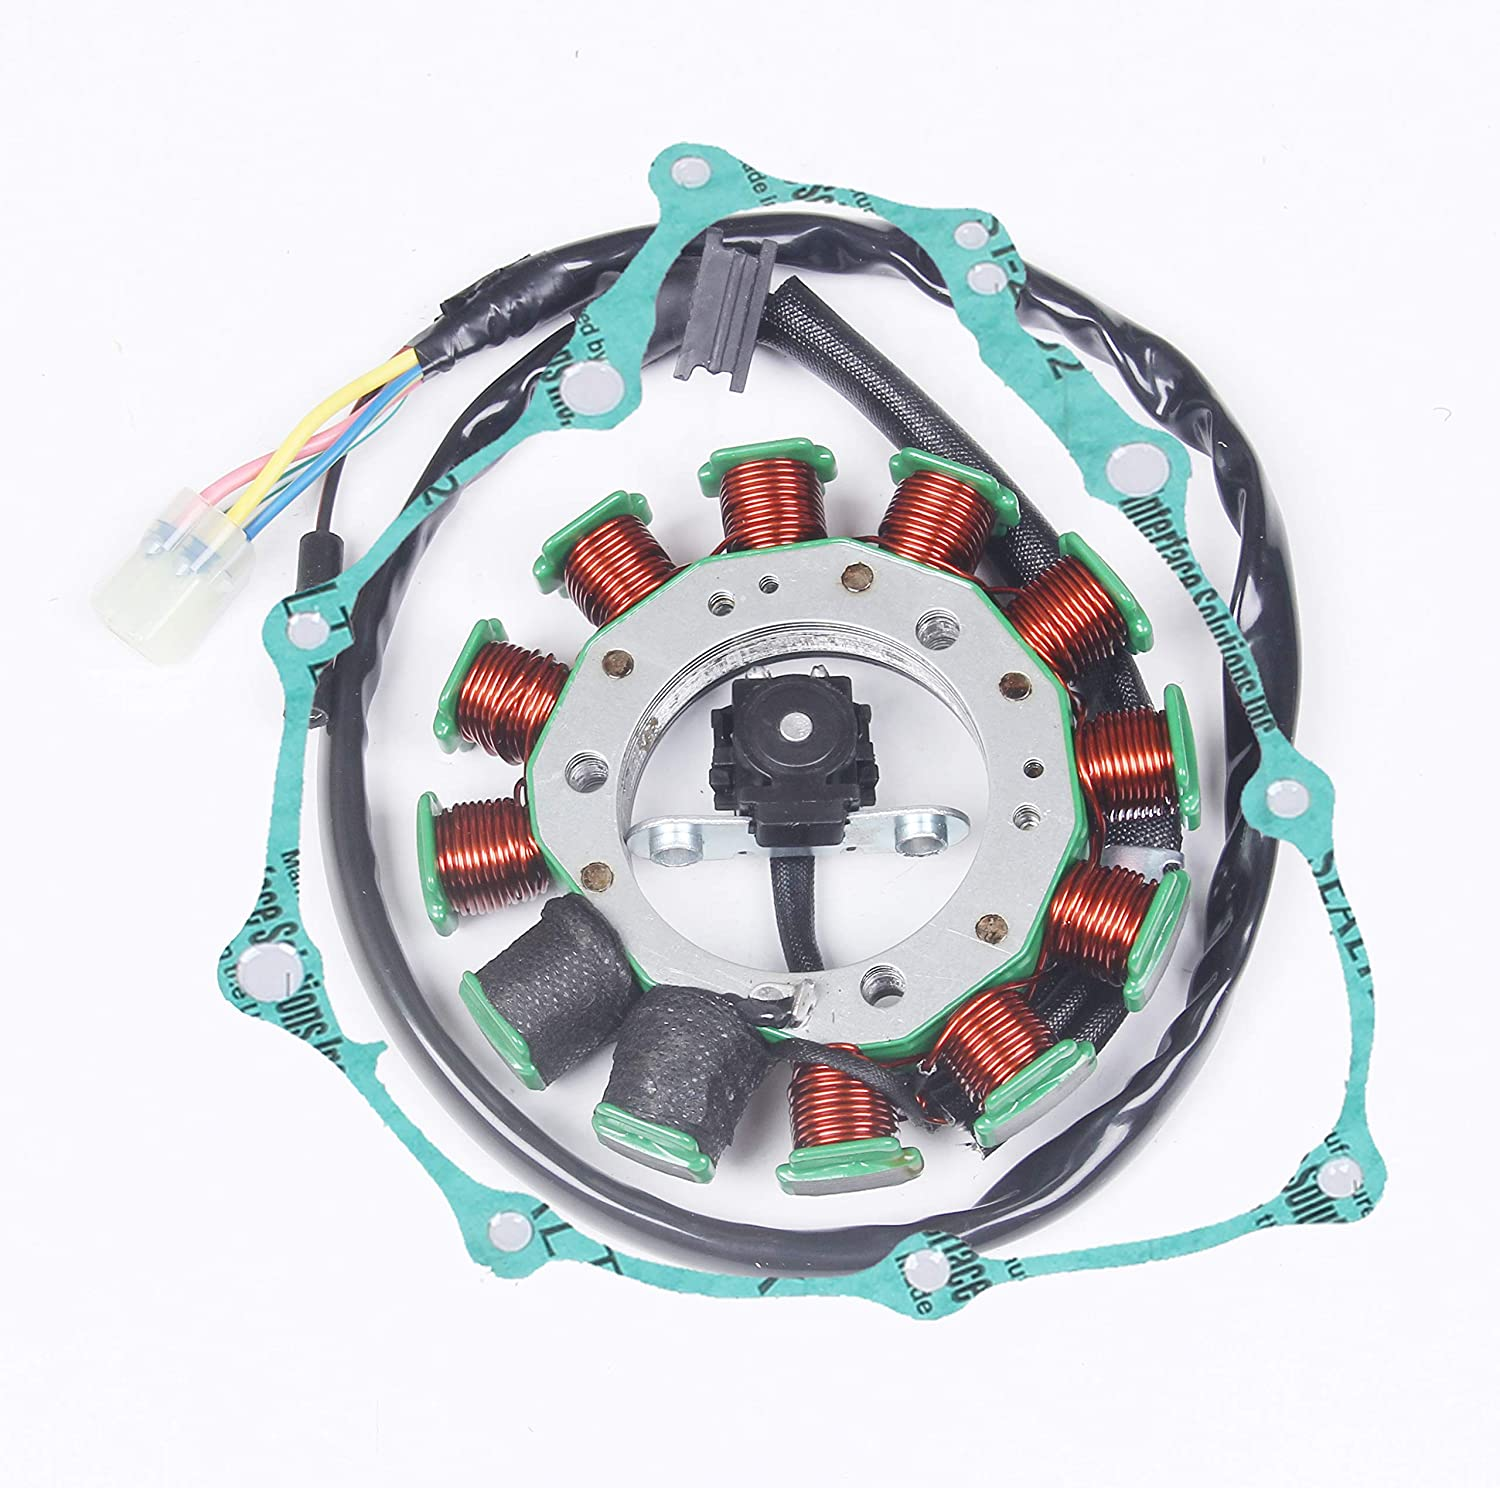 New Magneto Stator Coil and Cover Gasket for Honda TRX400EX Sportrax 400 TRX400X 2x4 1999-2014